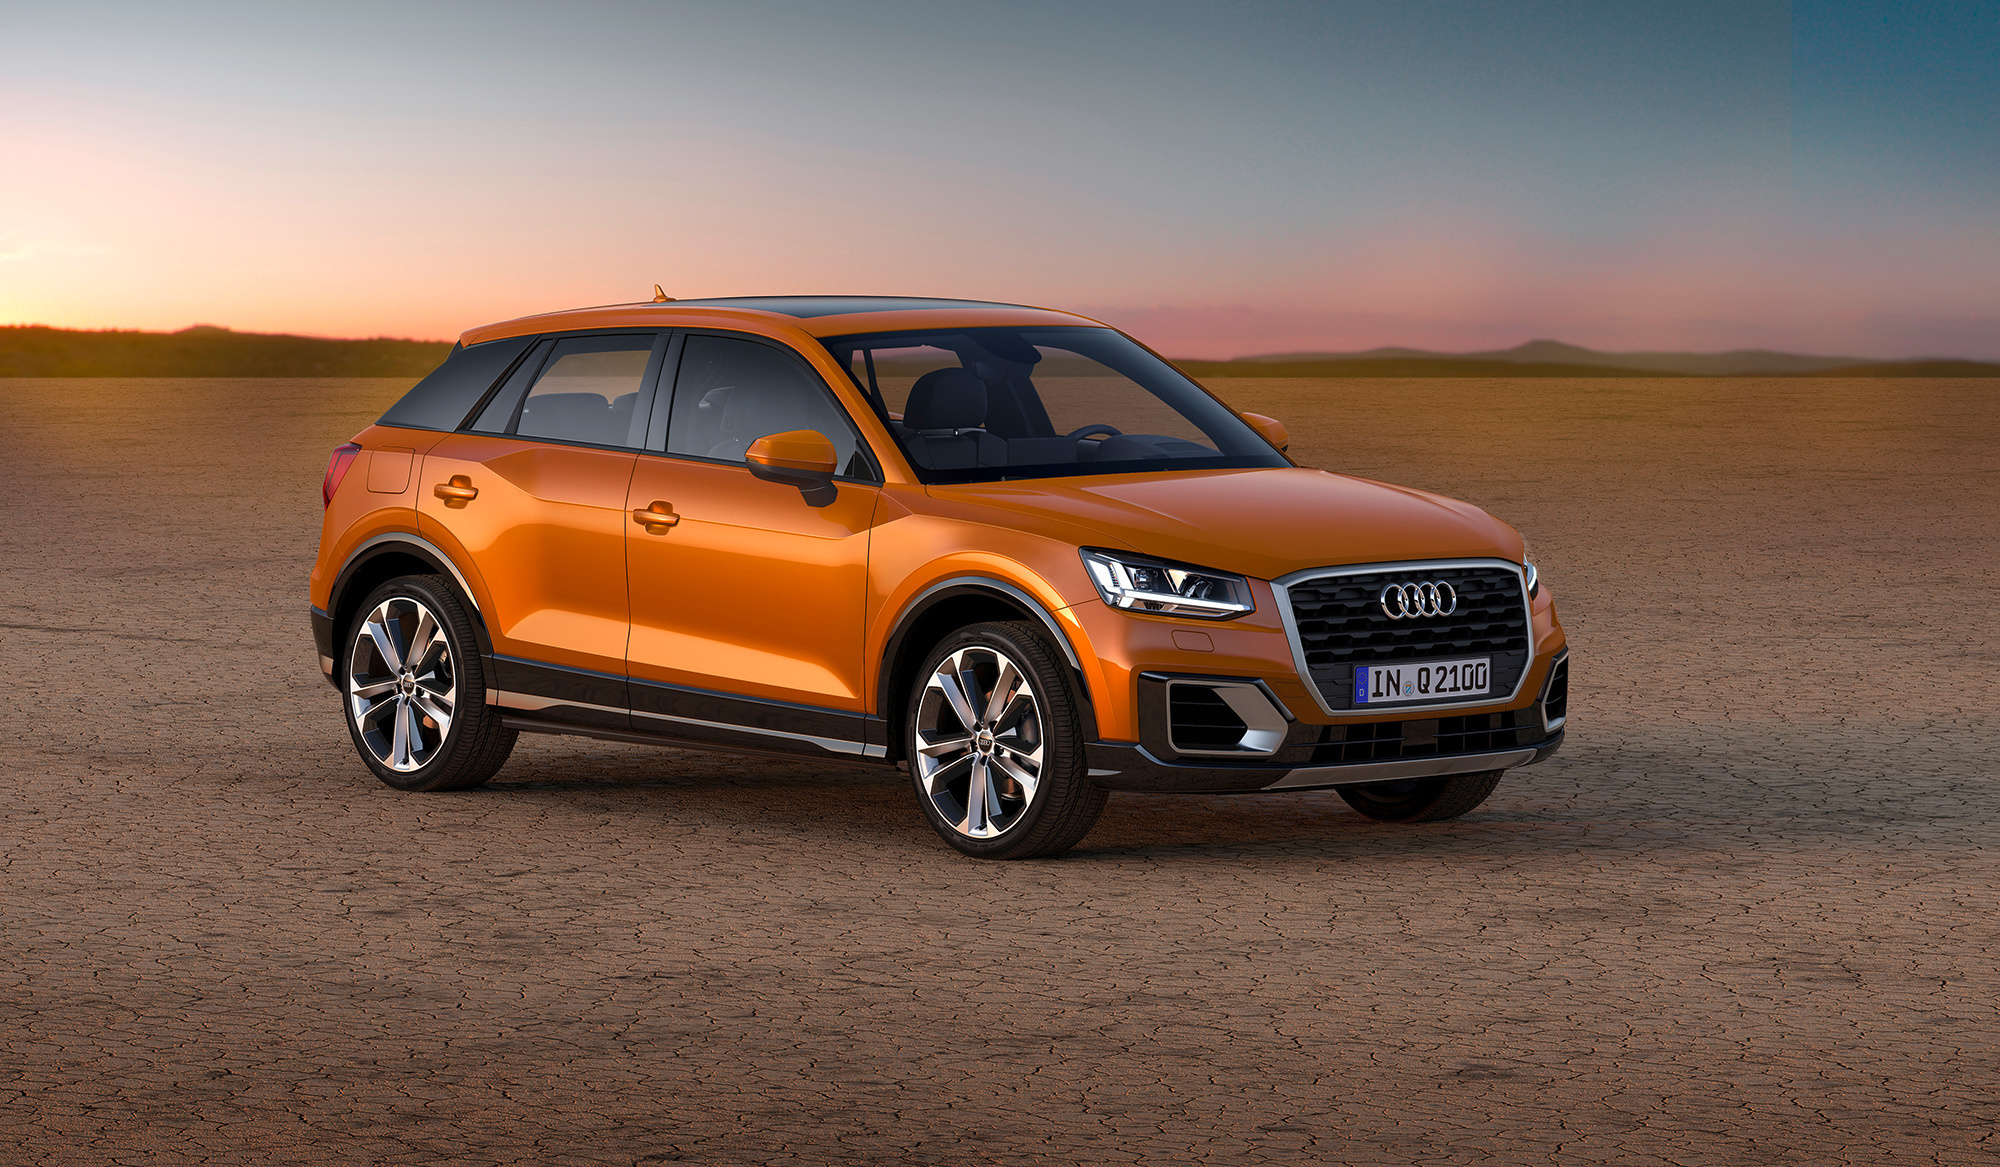 Audi Q2 Wallpapers HQ